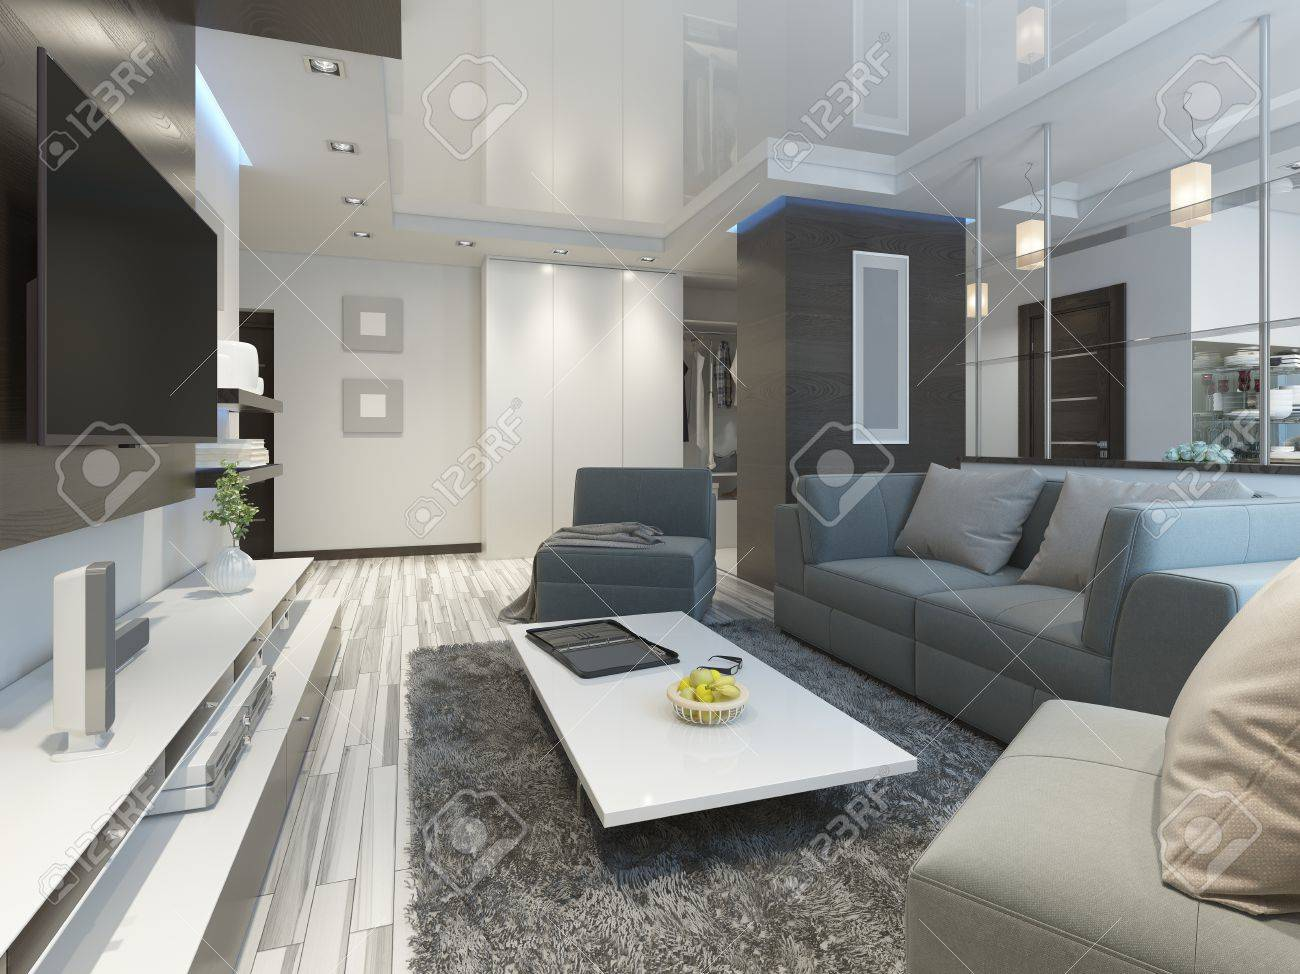 Luxury living room studio in a modern style with comfortable..